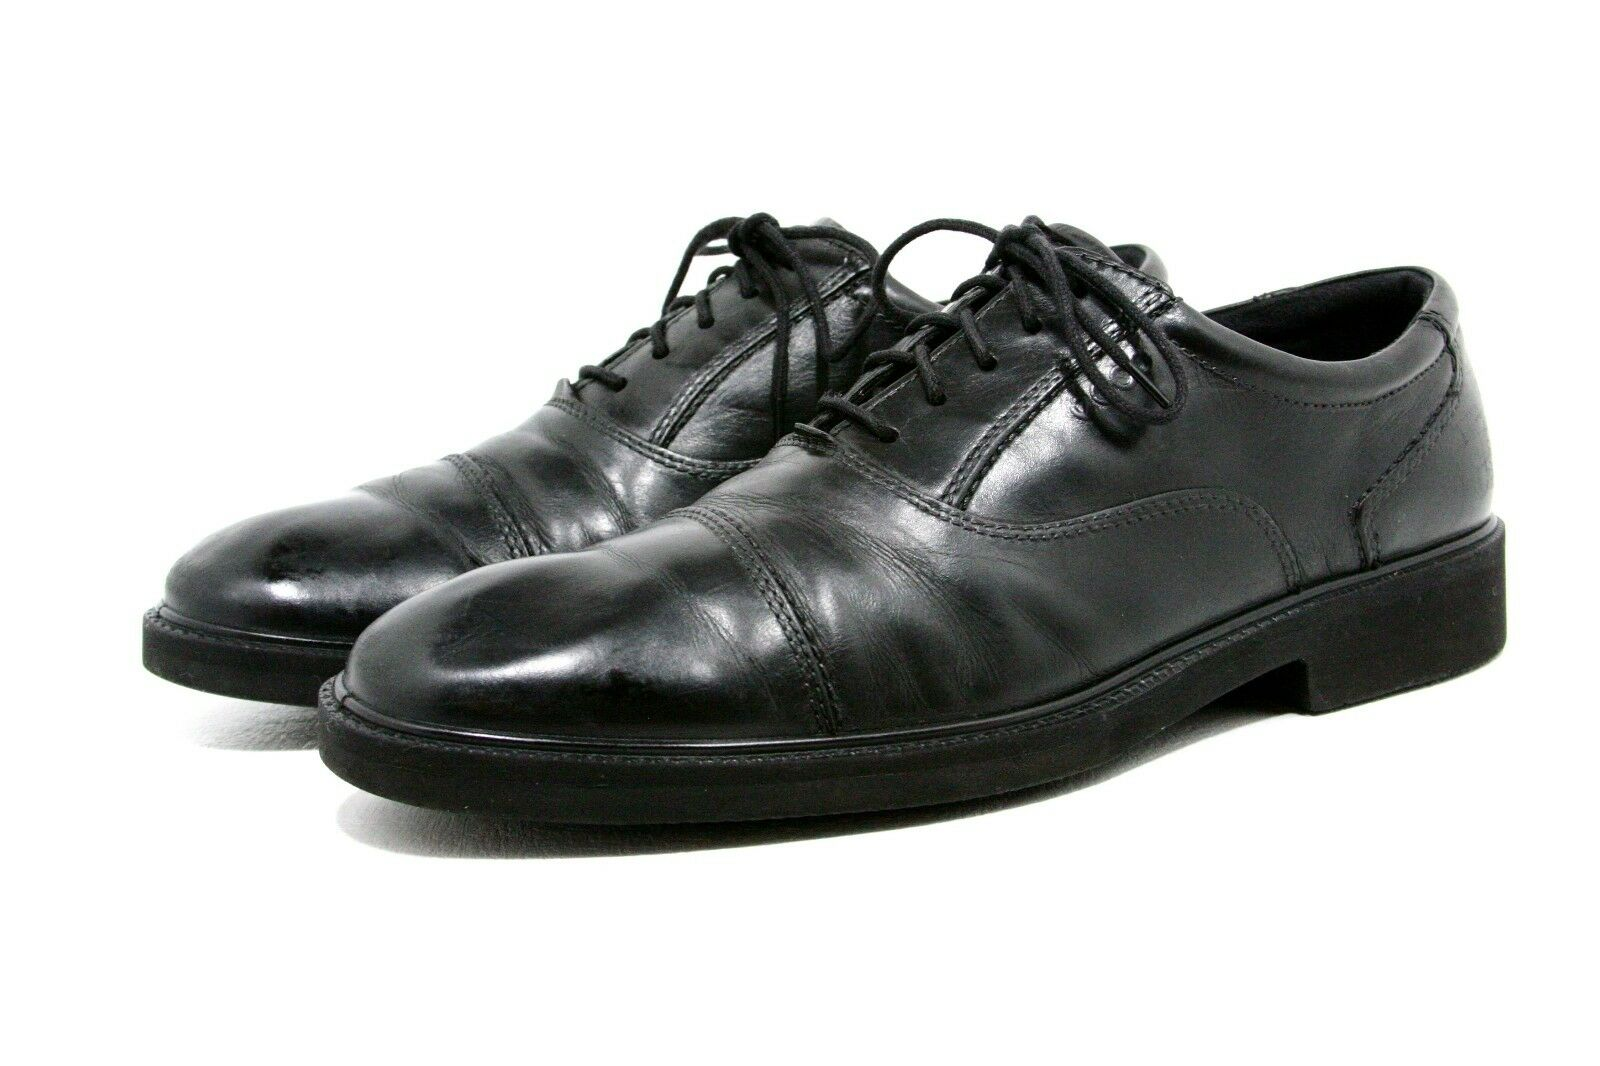 Mens Ecco Dress shoes Size 11 - 11.5 Black Leather Cap Toe Casual Comfort System